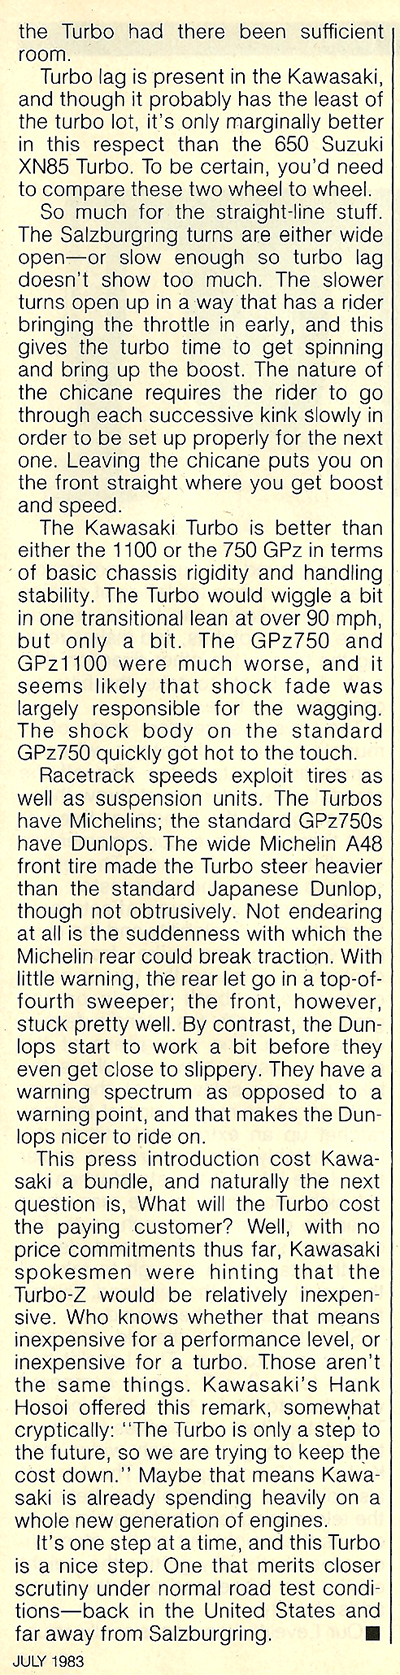 1983 Kawasaki ZX750 Turbo road test 4.jpg